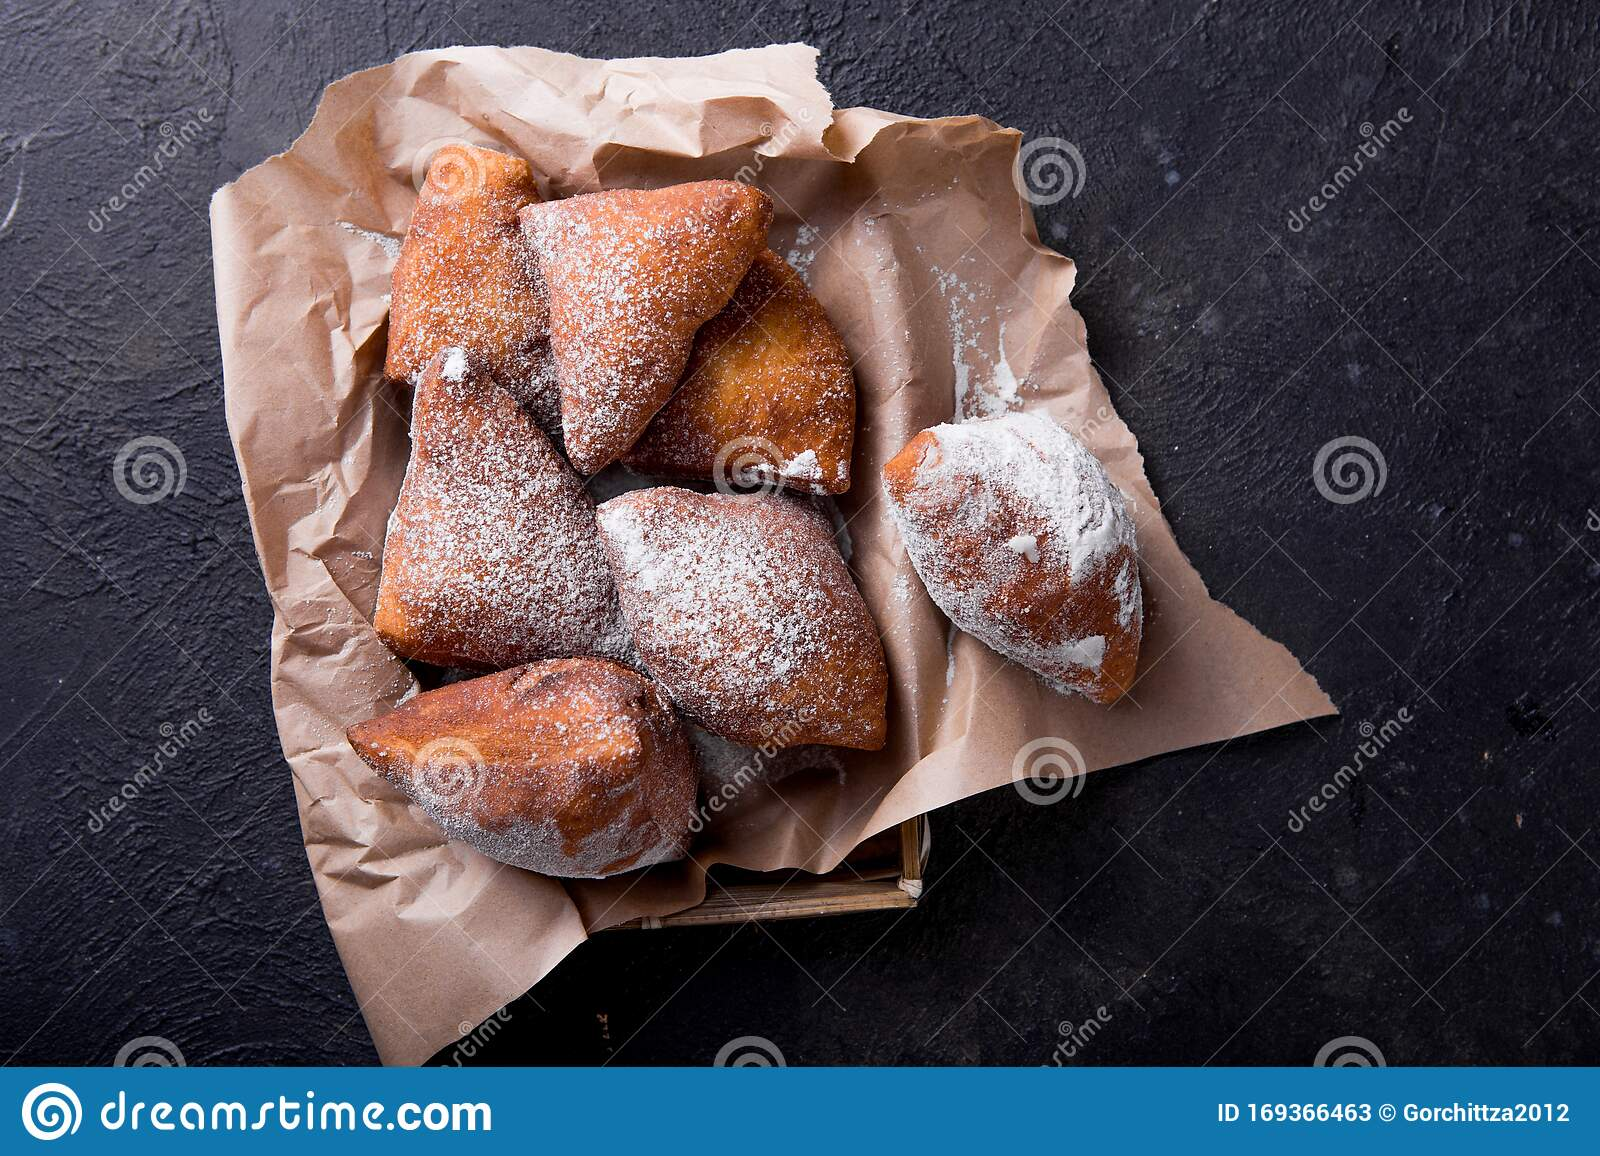 Mandazi Is A Slightly Sweet East African Street Food Top View From Above Stock Image Image Of Basket Dessert 169366463